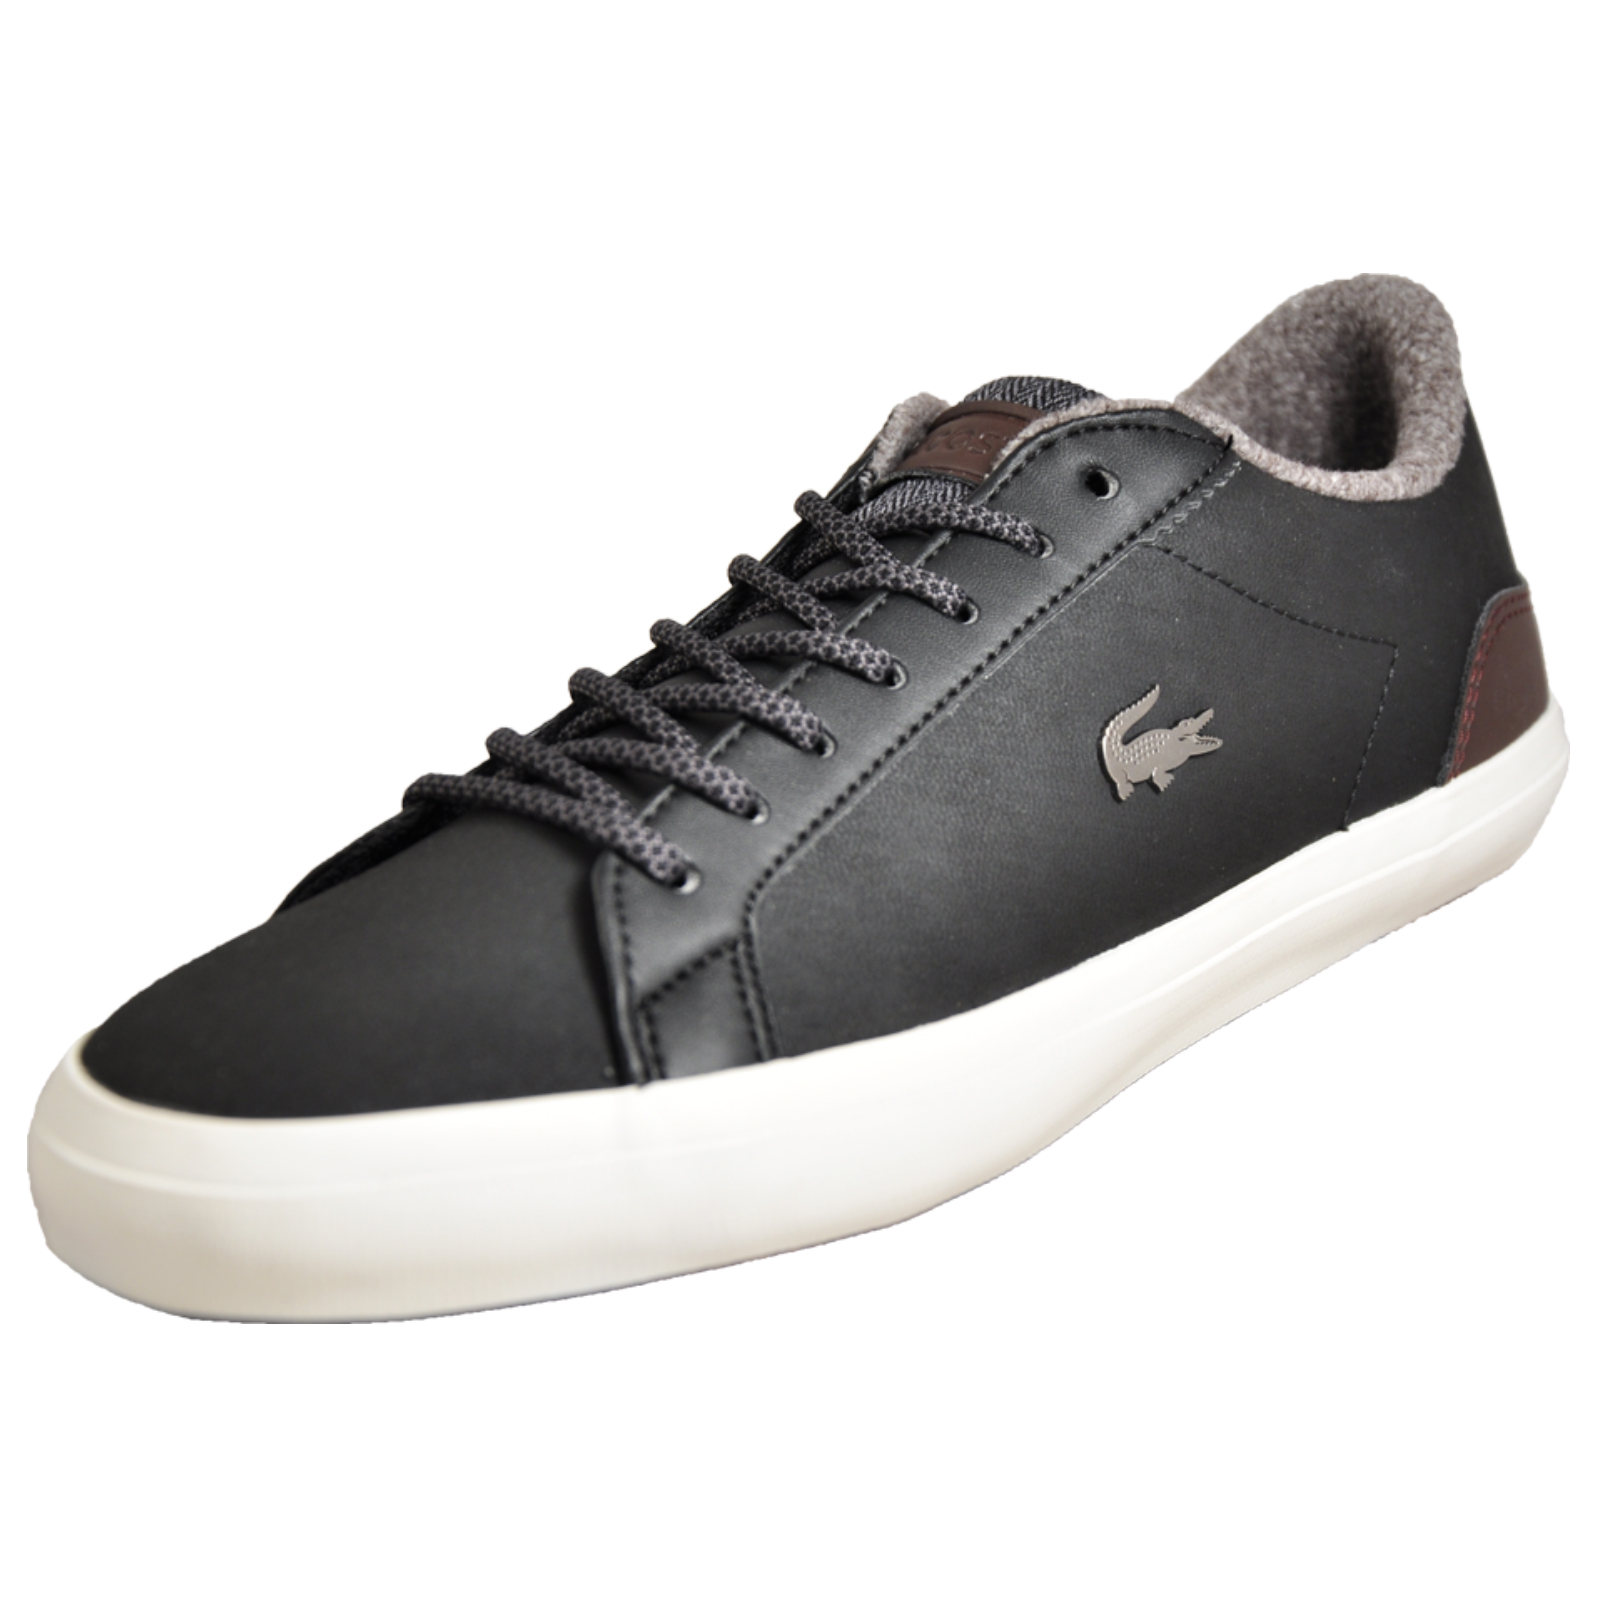 b90714fb Details about Lacoste Lerond Men's Leather Classic Casual Designer Trainers  Black B Grade